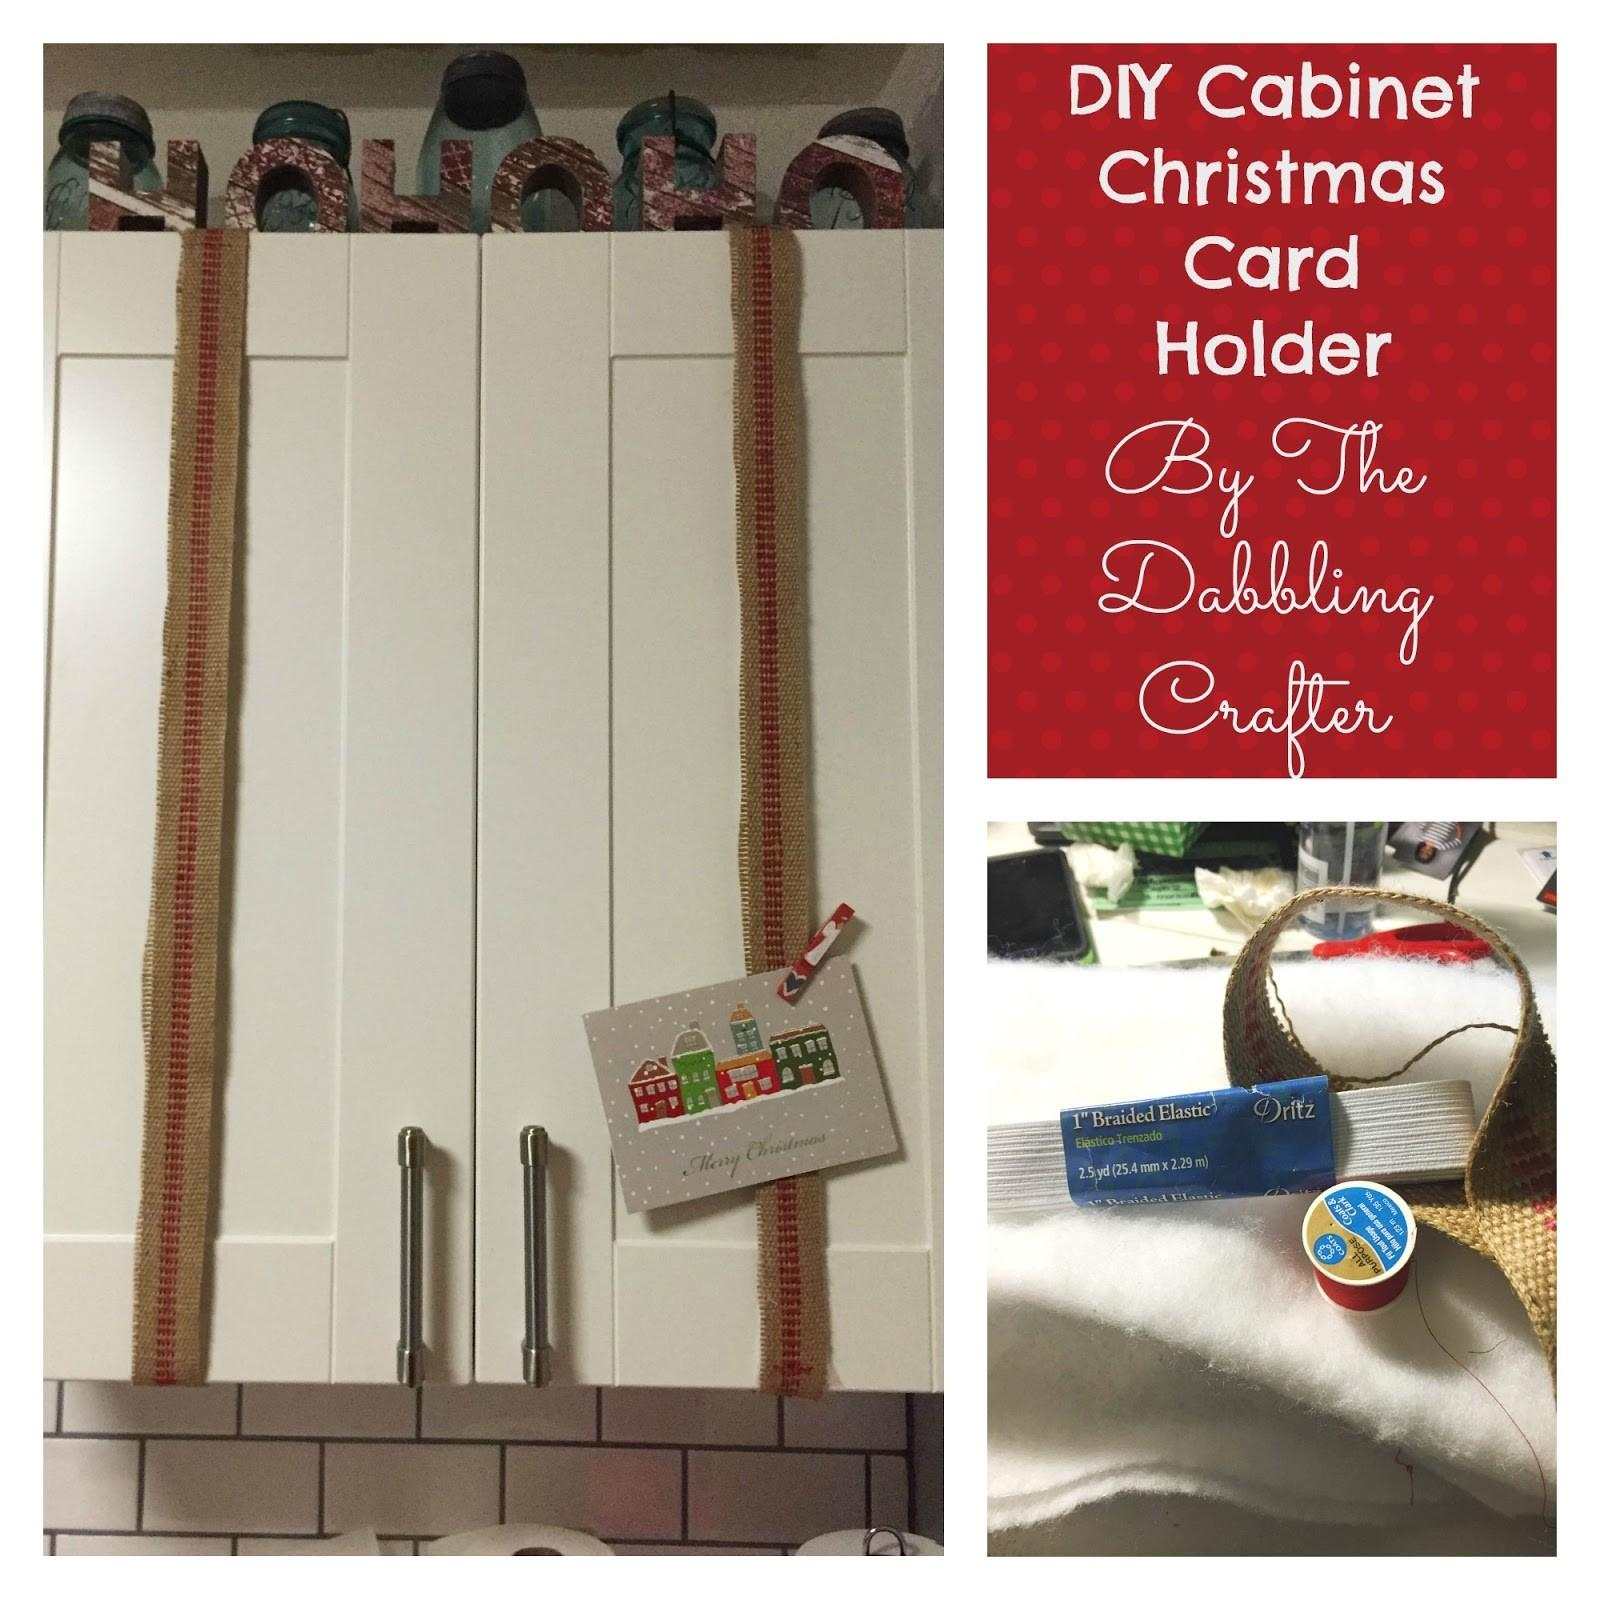 Dabbling Crafter Diy Cabinet Christmas Card Holder